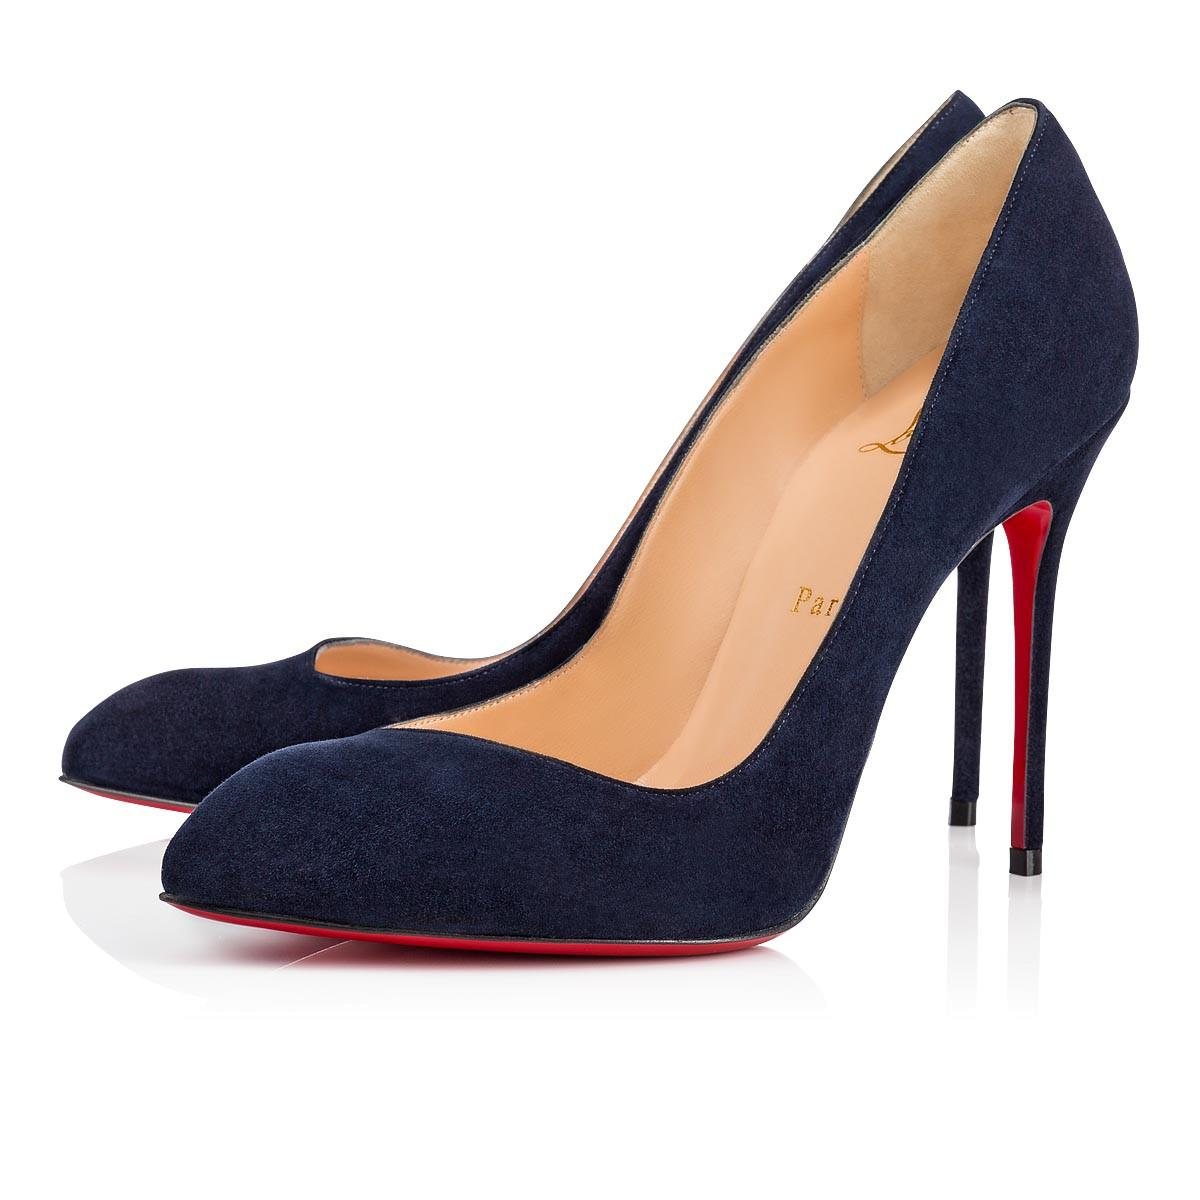 cfccfa41c9b3 Christian Louboutin Decollete 85Mm Suede Red Sole Pumps In Marine ...